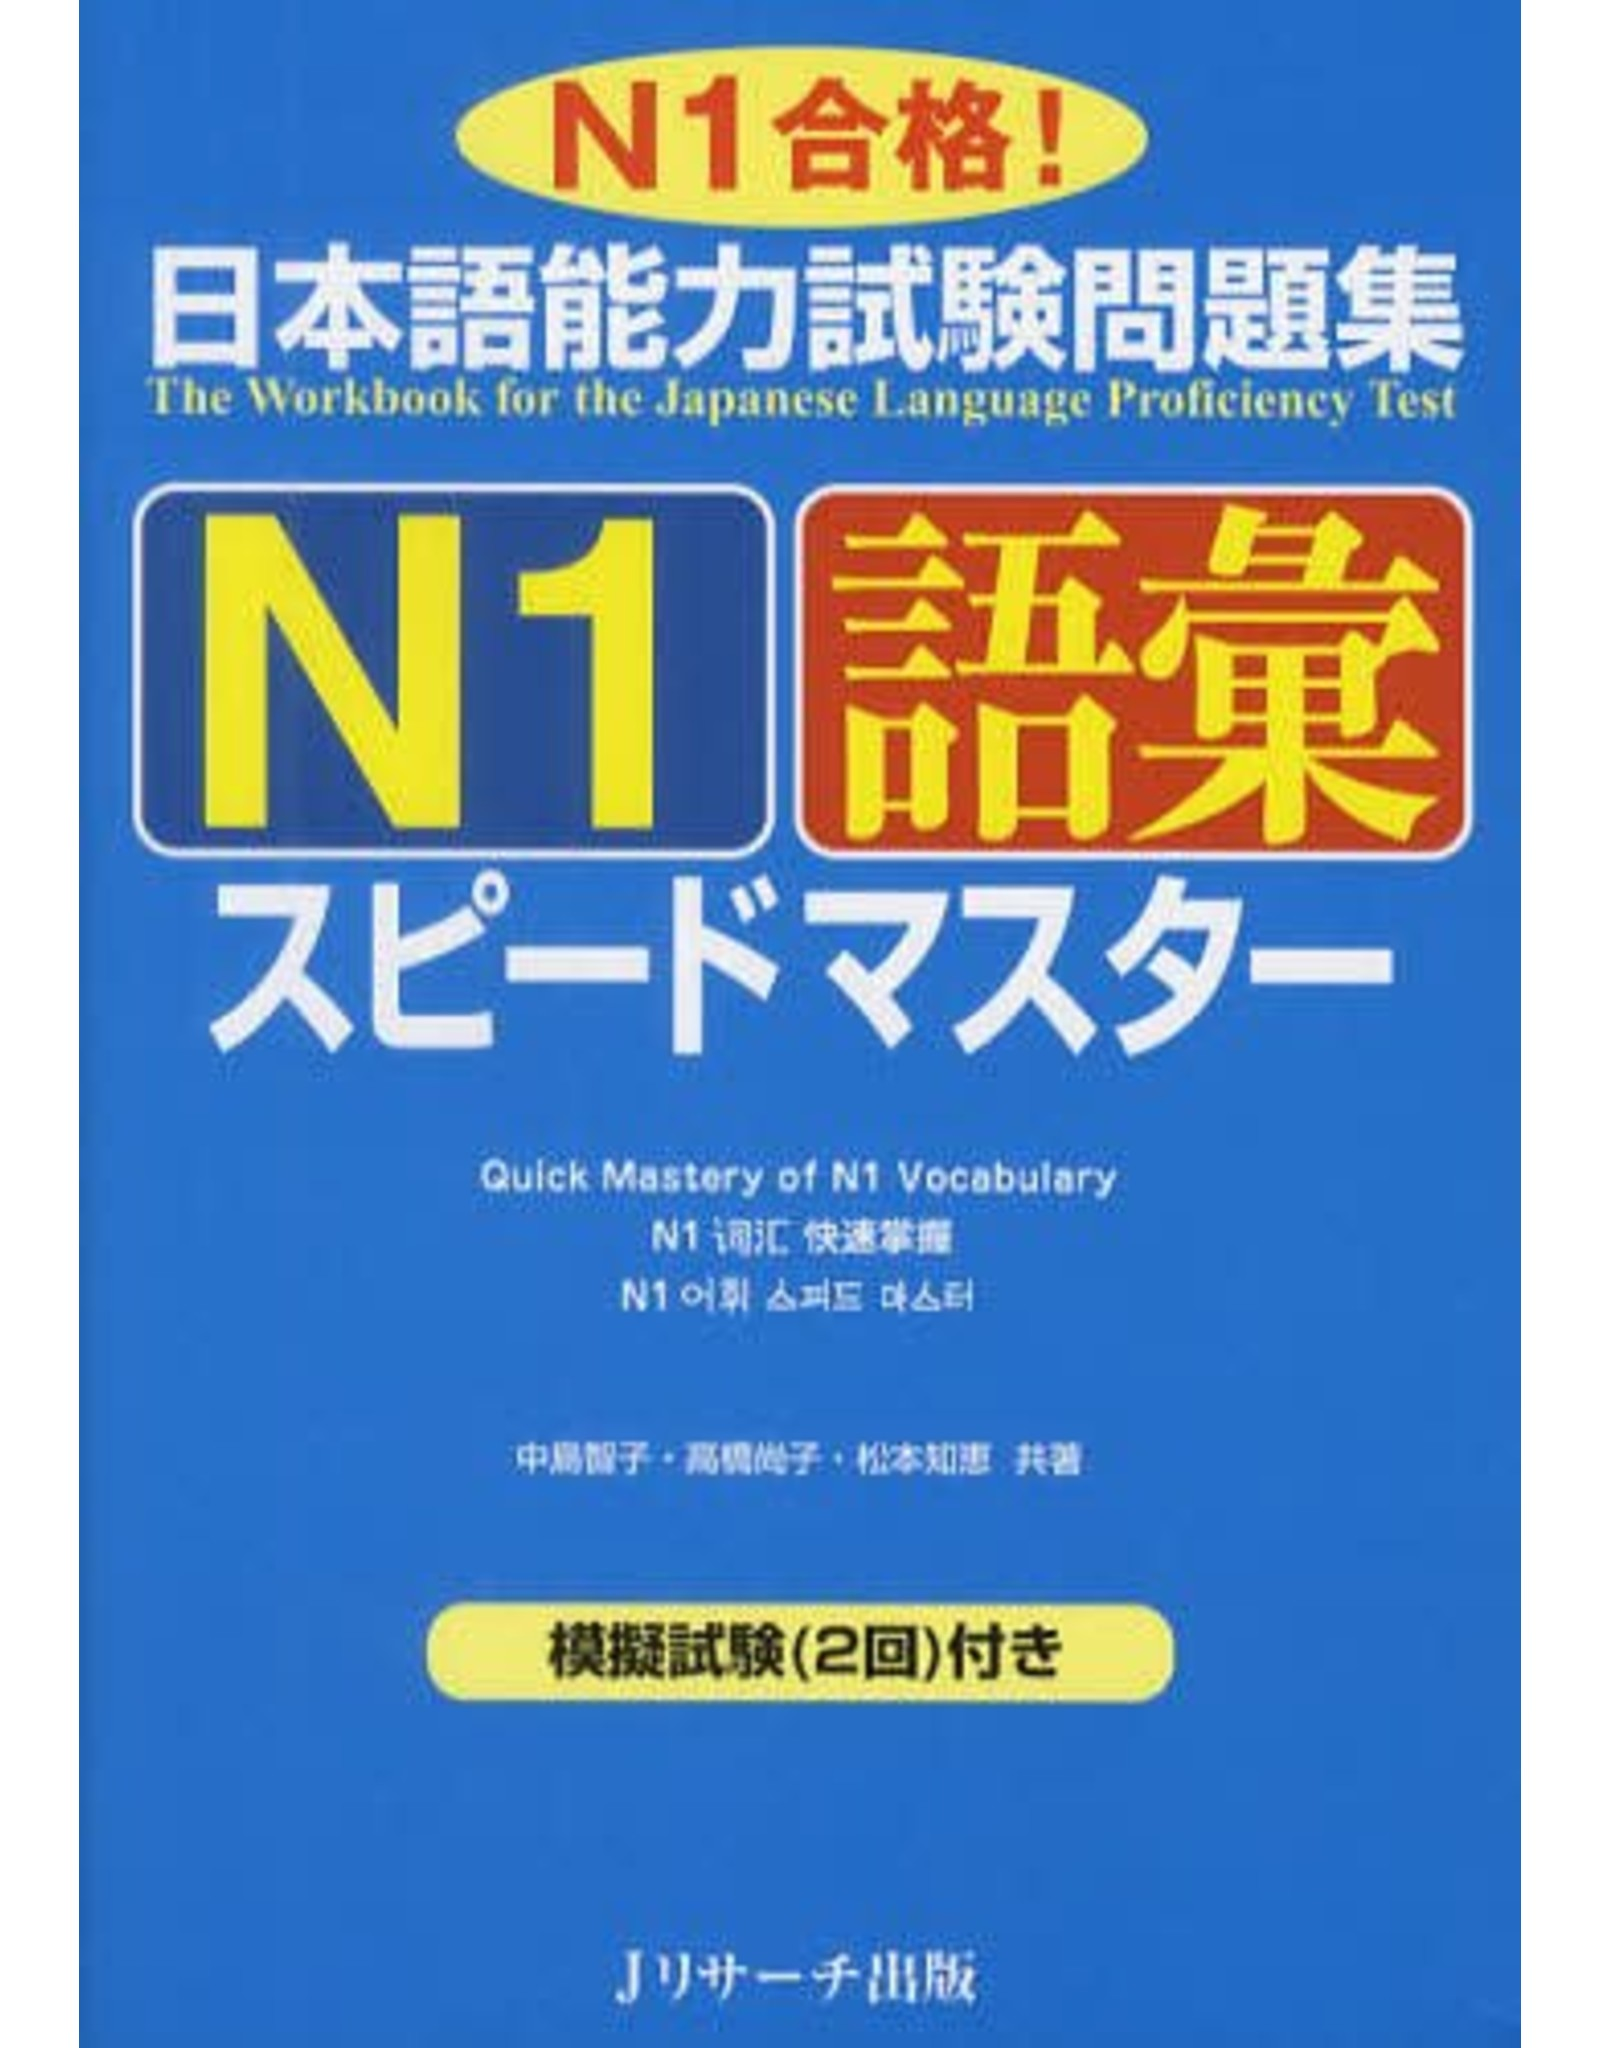 J RESEARCH QUICK MASTERY OF N1 VOCABULARY